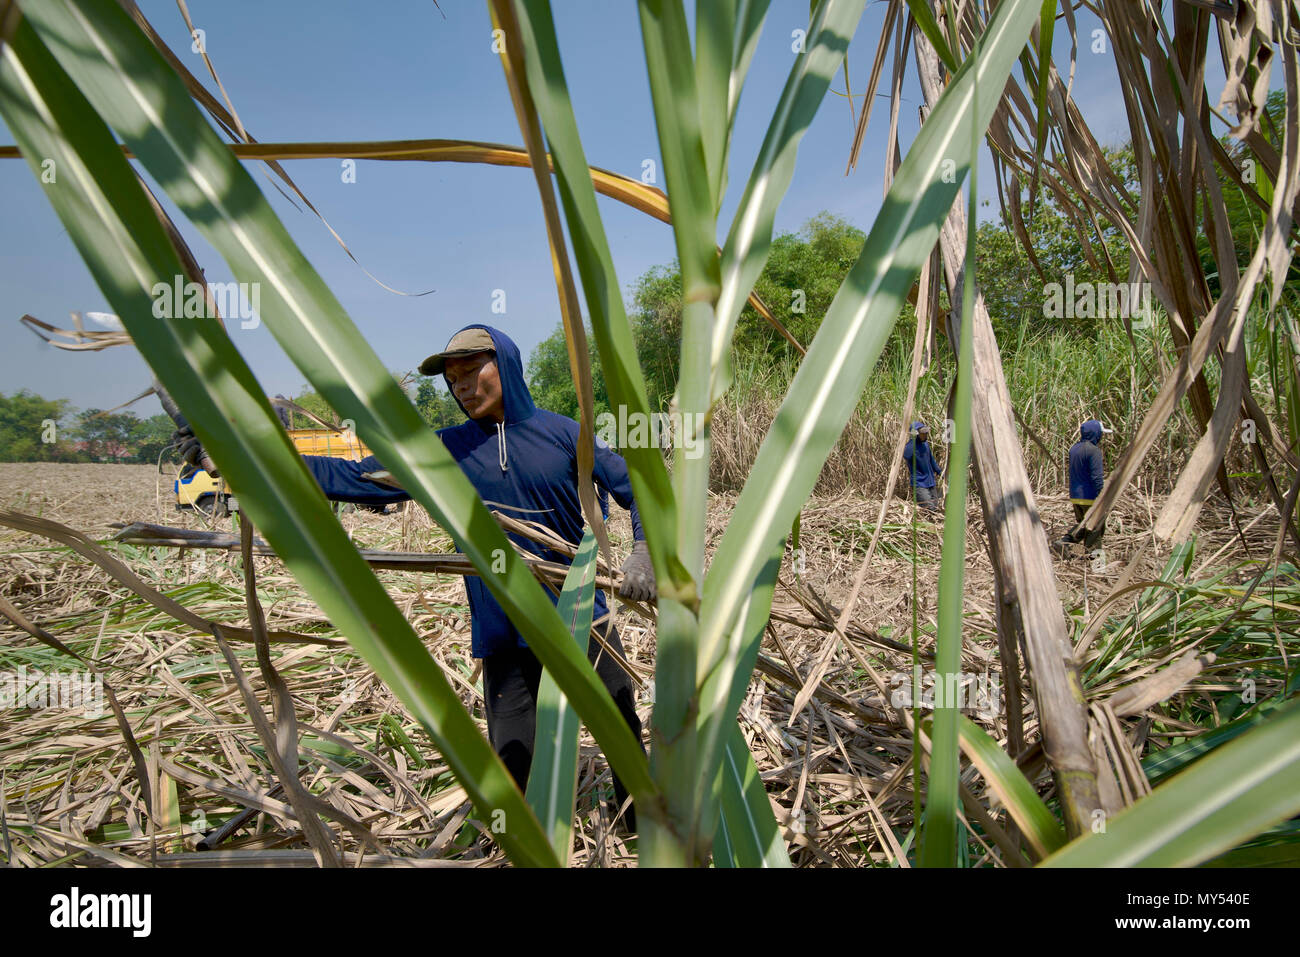 A contract worker harvesting sugarcane in Central Java, Indonesia. - Stock Image